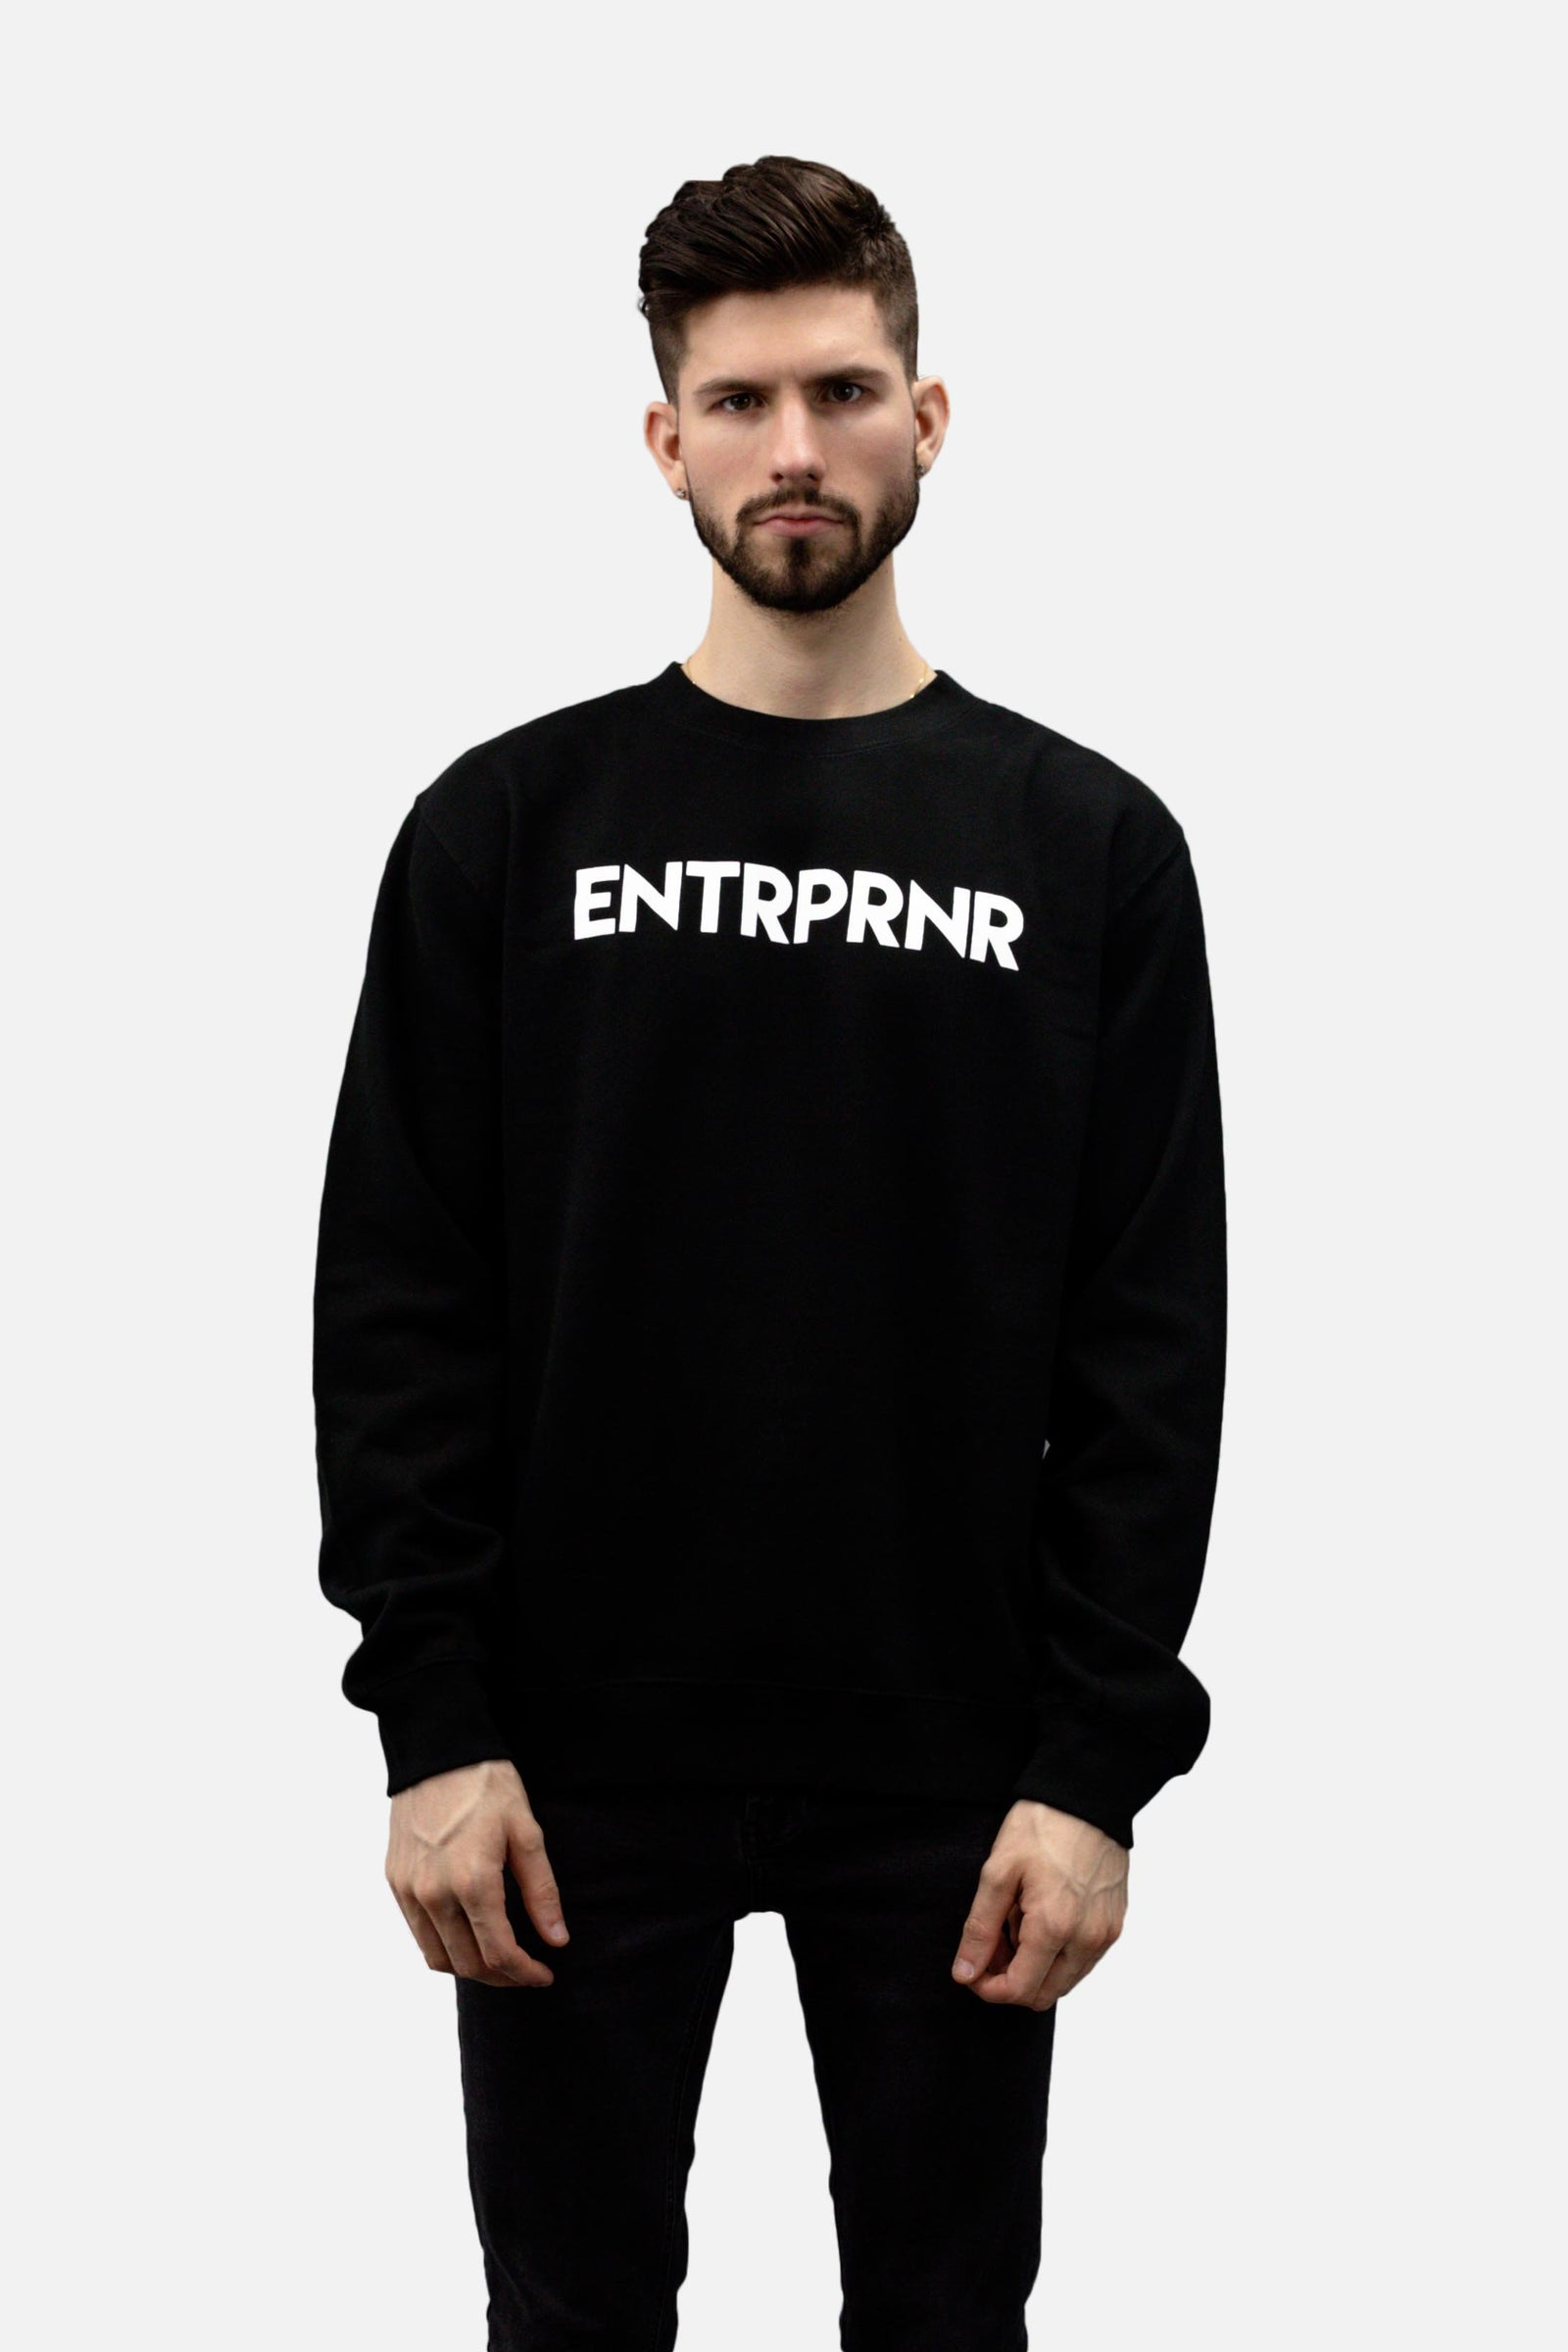 ENTRPRNR Logo Crew Neck - Black - ENTRPRNR® | The Entrepreneur's Clothing Brand. | Stagnancy is the Enemy. Action is King.